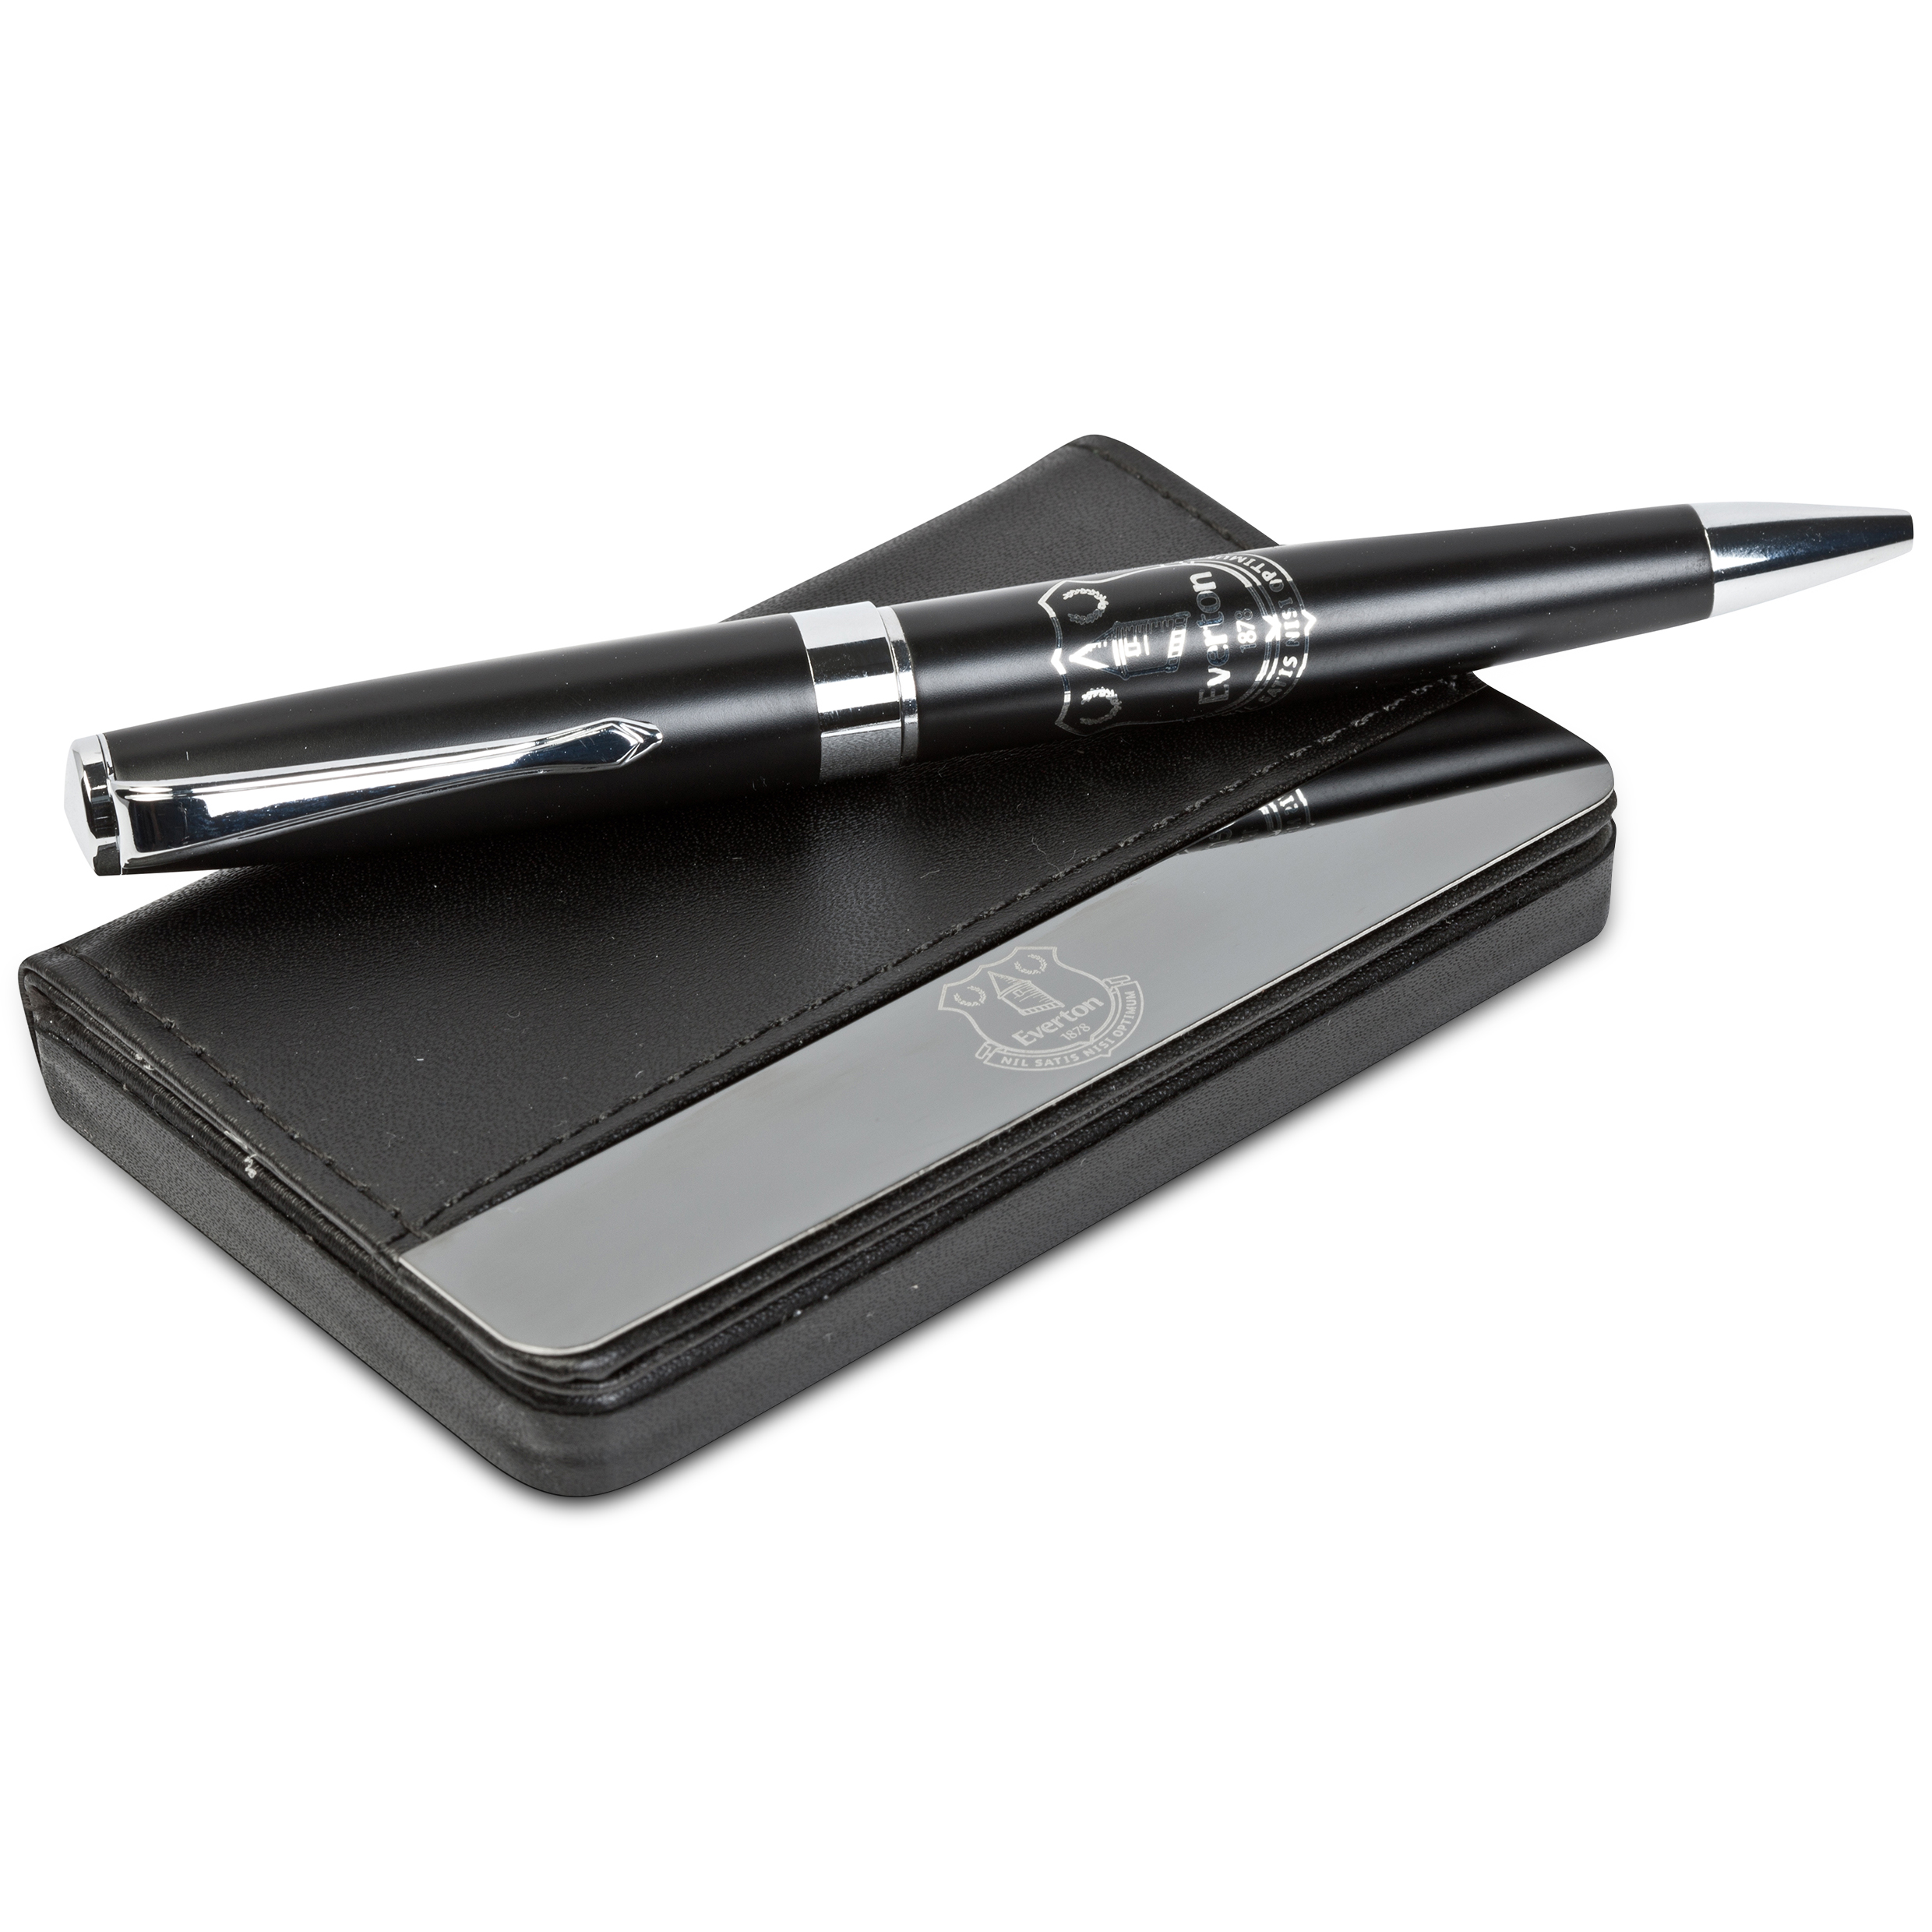 Everton Business card holder and pen set